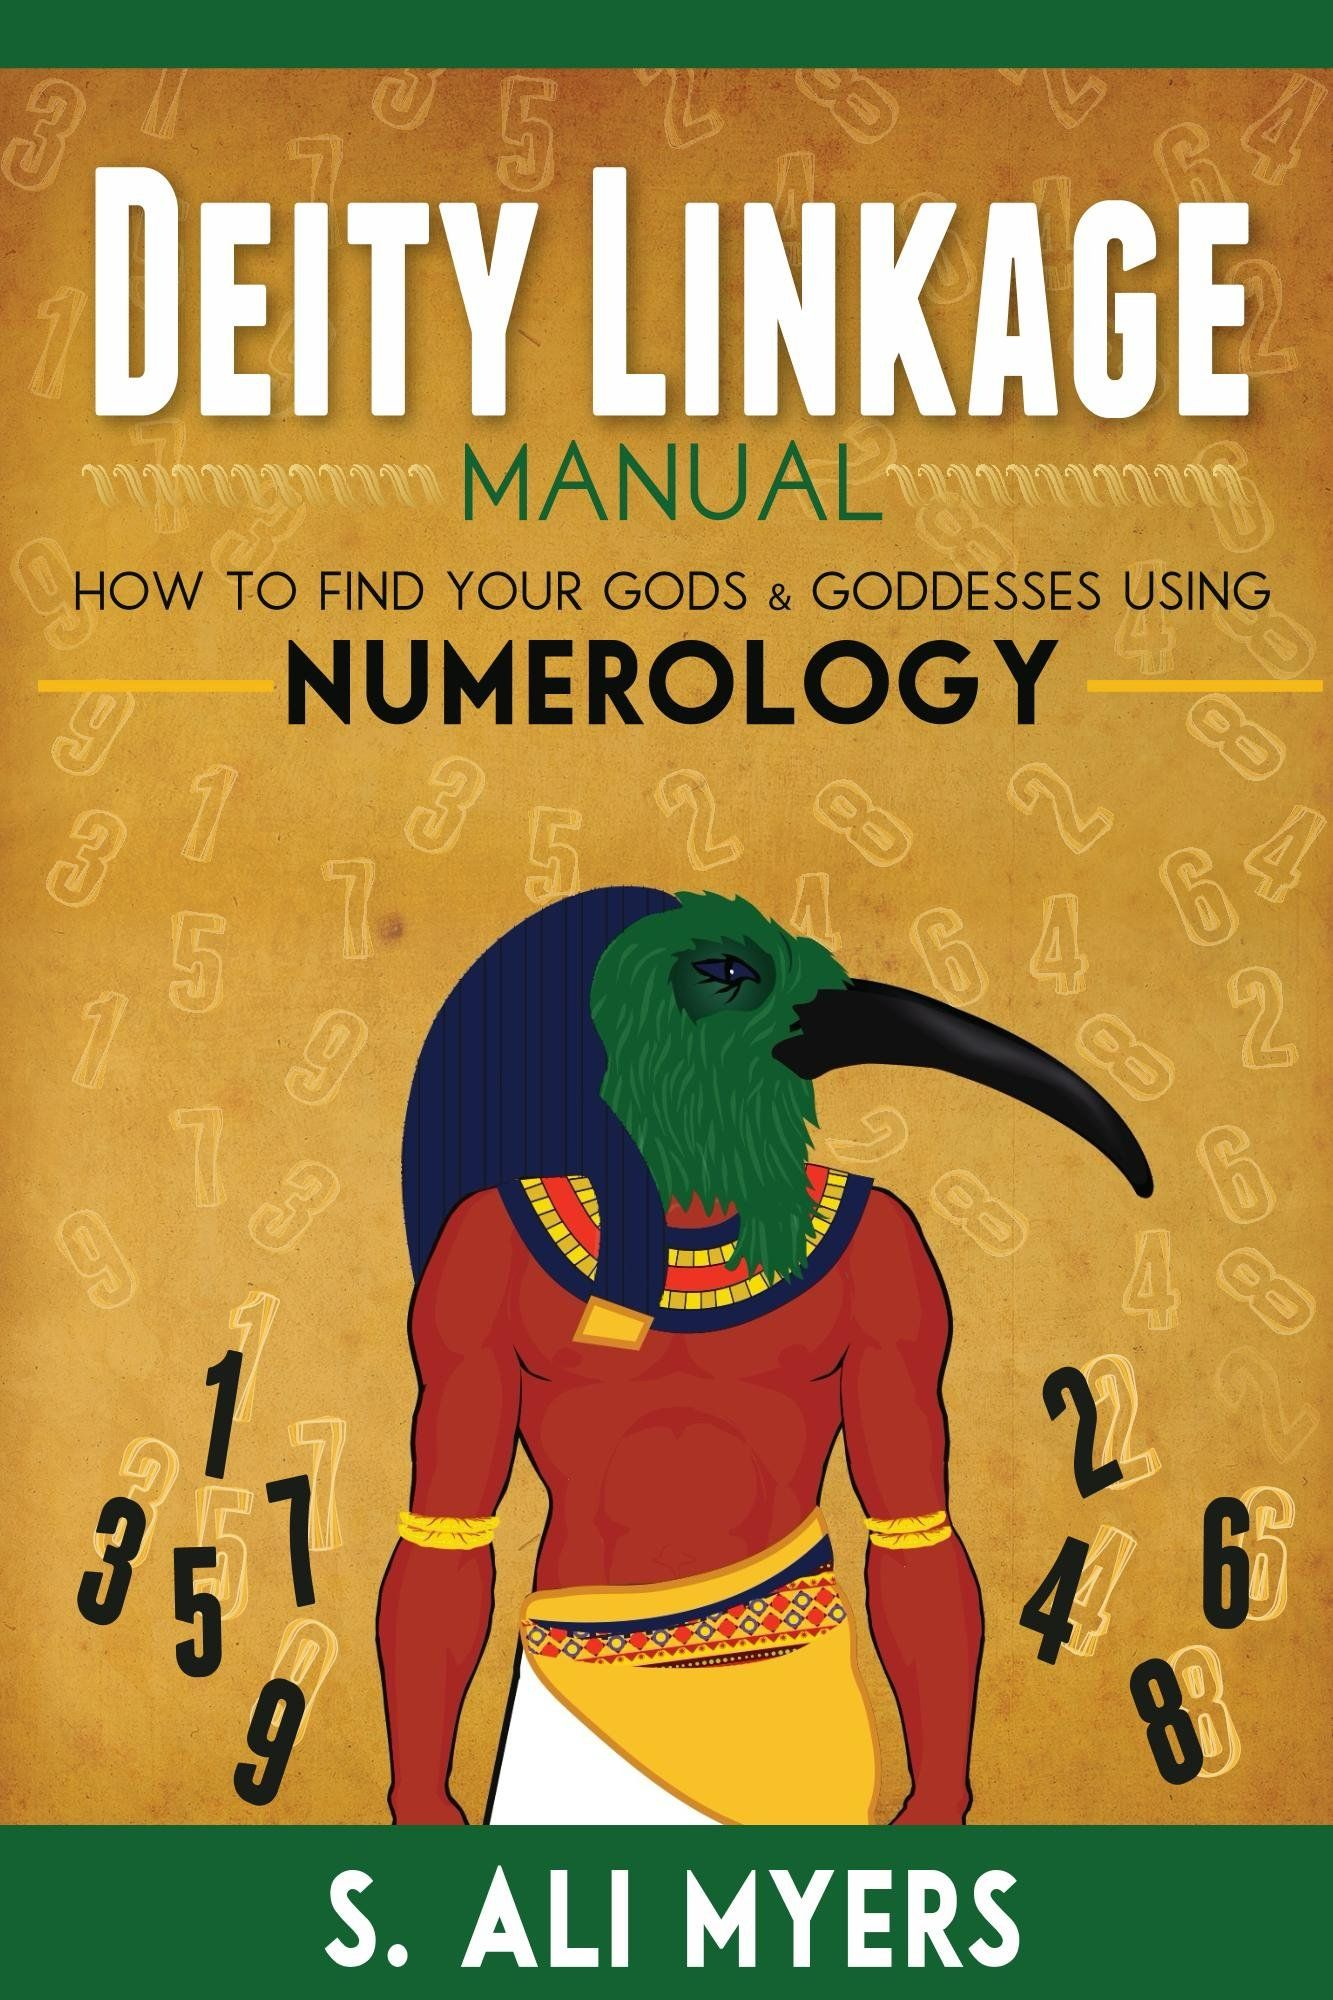 Deity Linkage Manual How to Find Your Gods & Goddesses